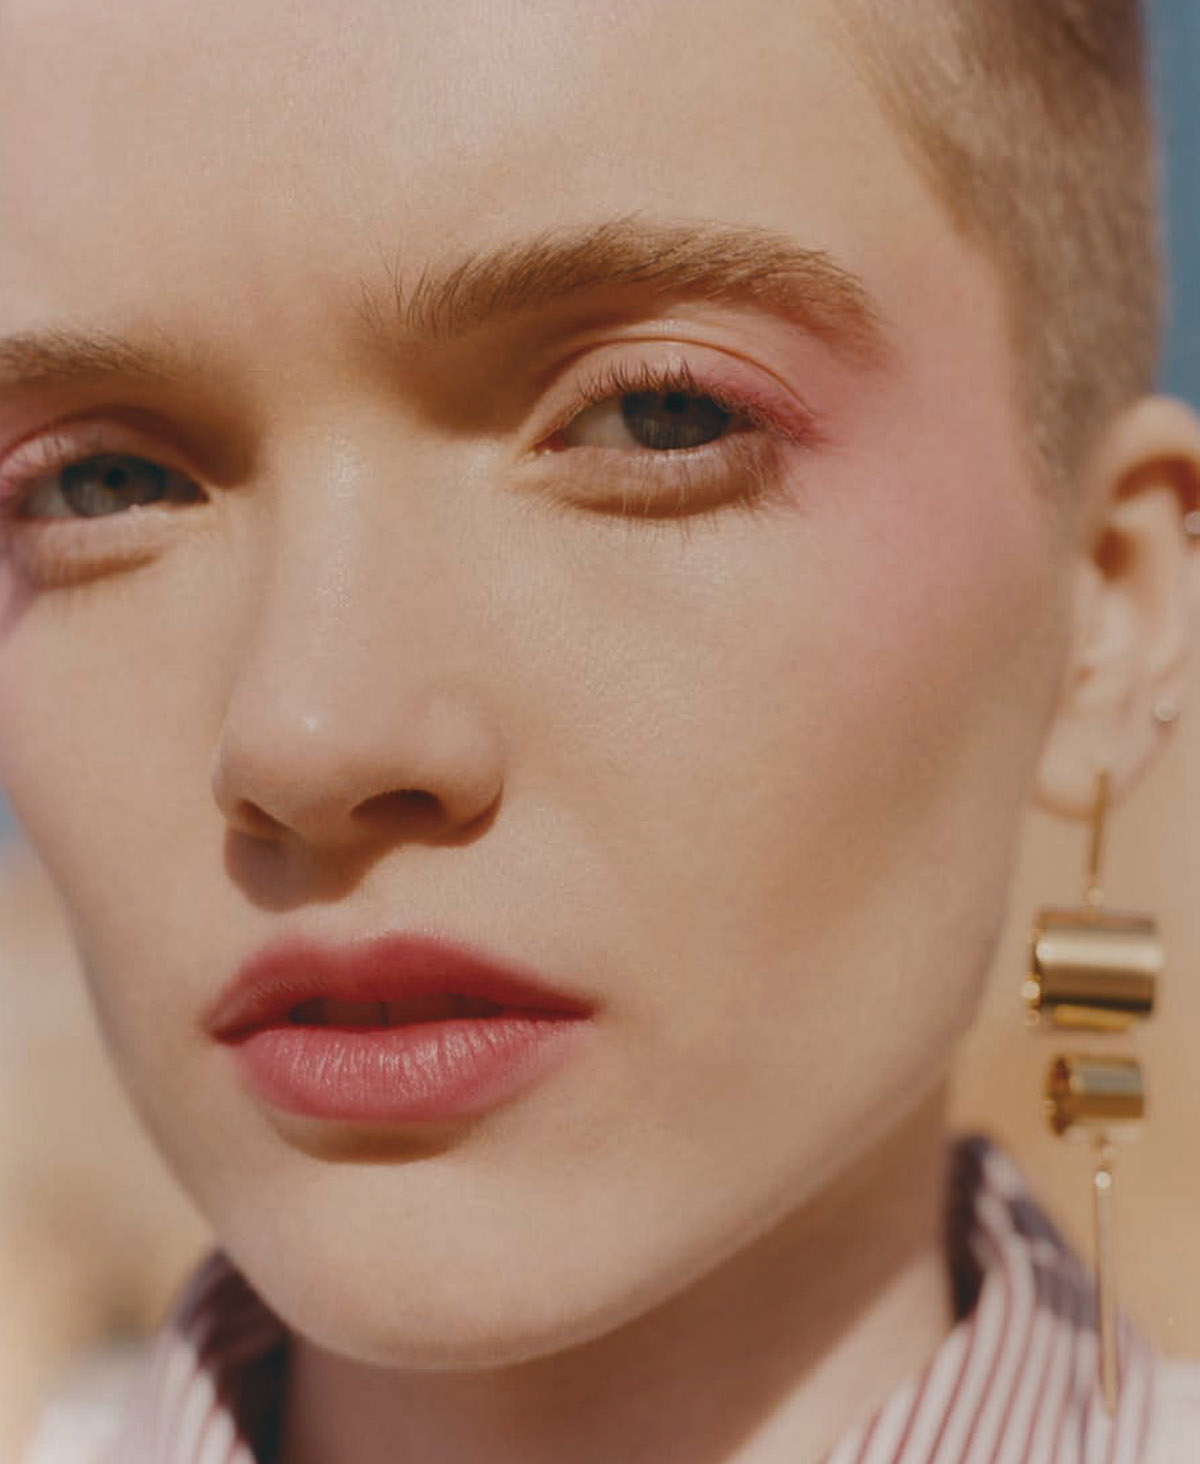 Ruth Bell by Jens Ingvarsson for Vogue China June 2021